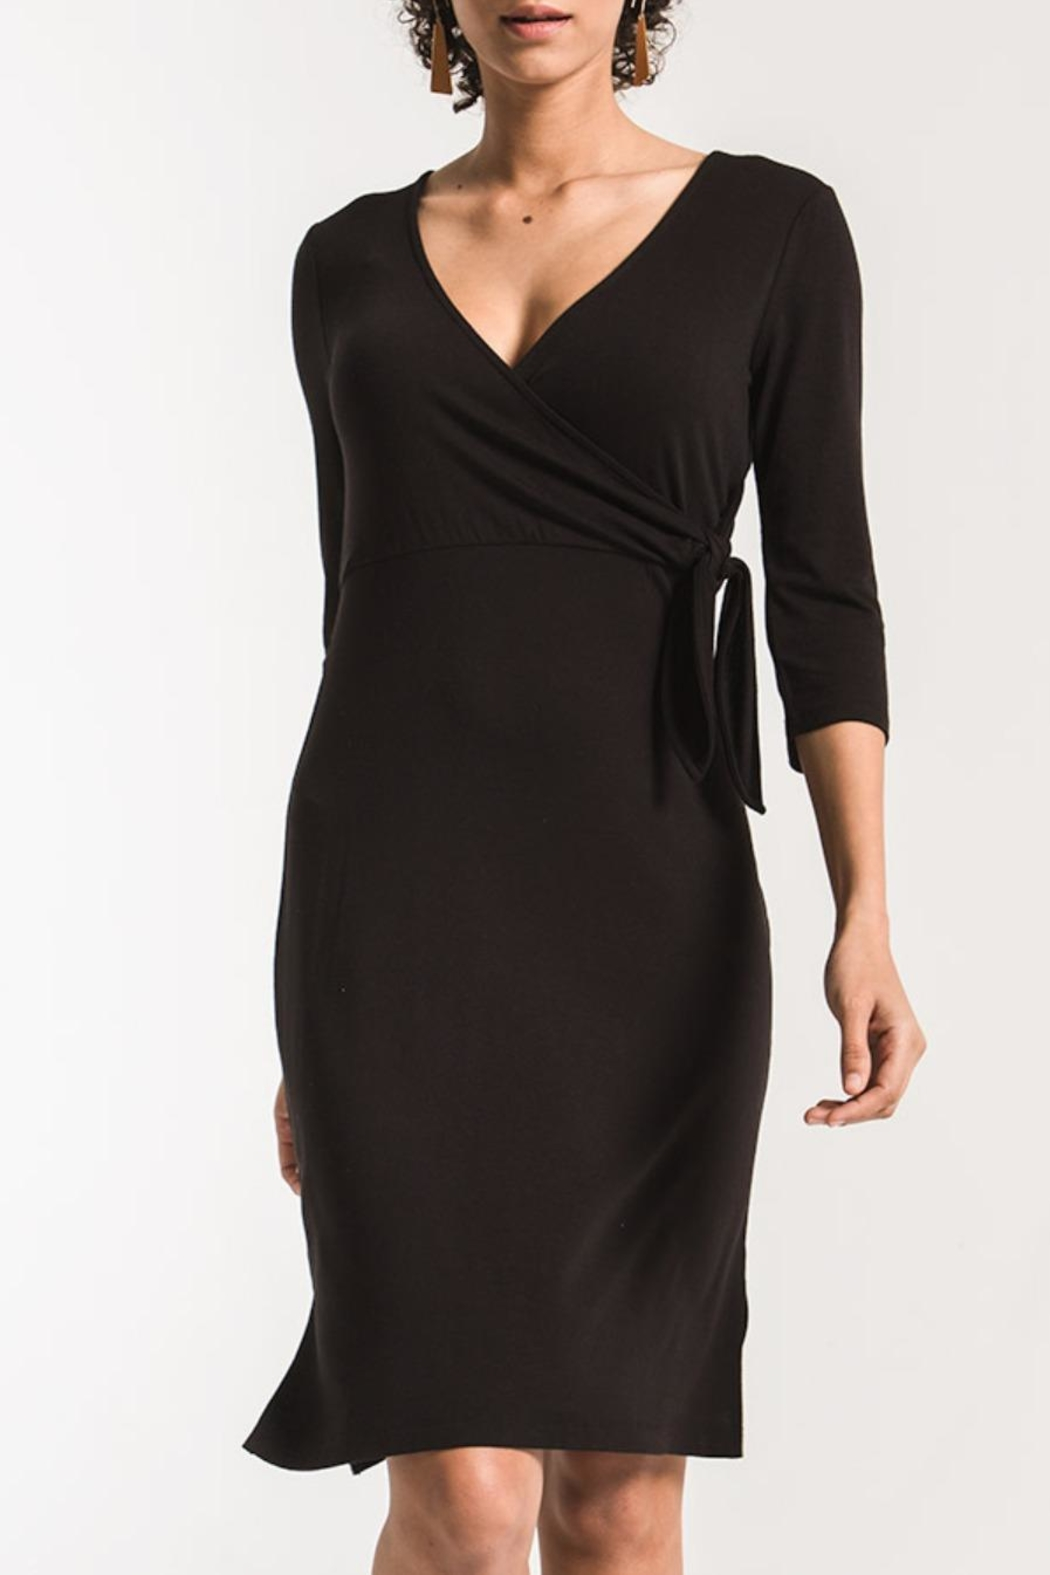 z supply Dahlia Wrap Dress - Main Image